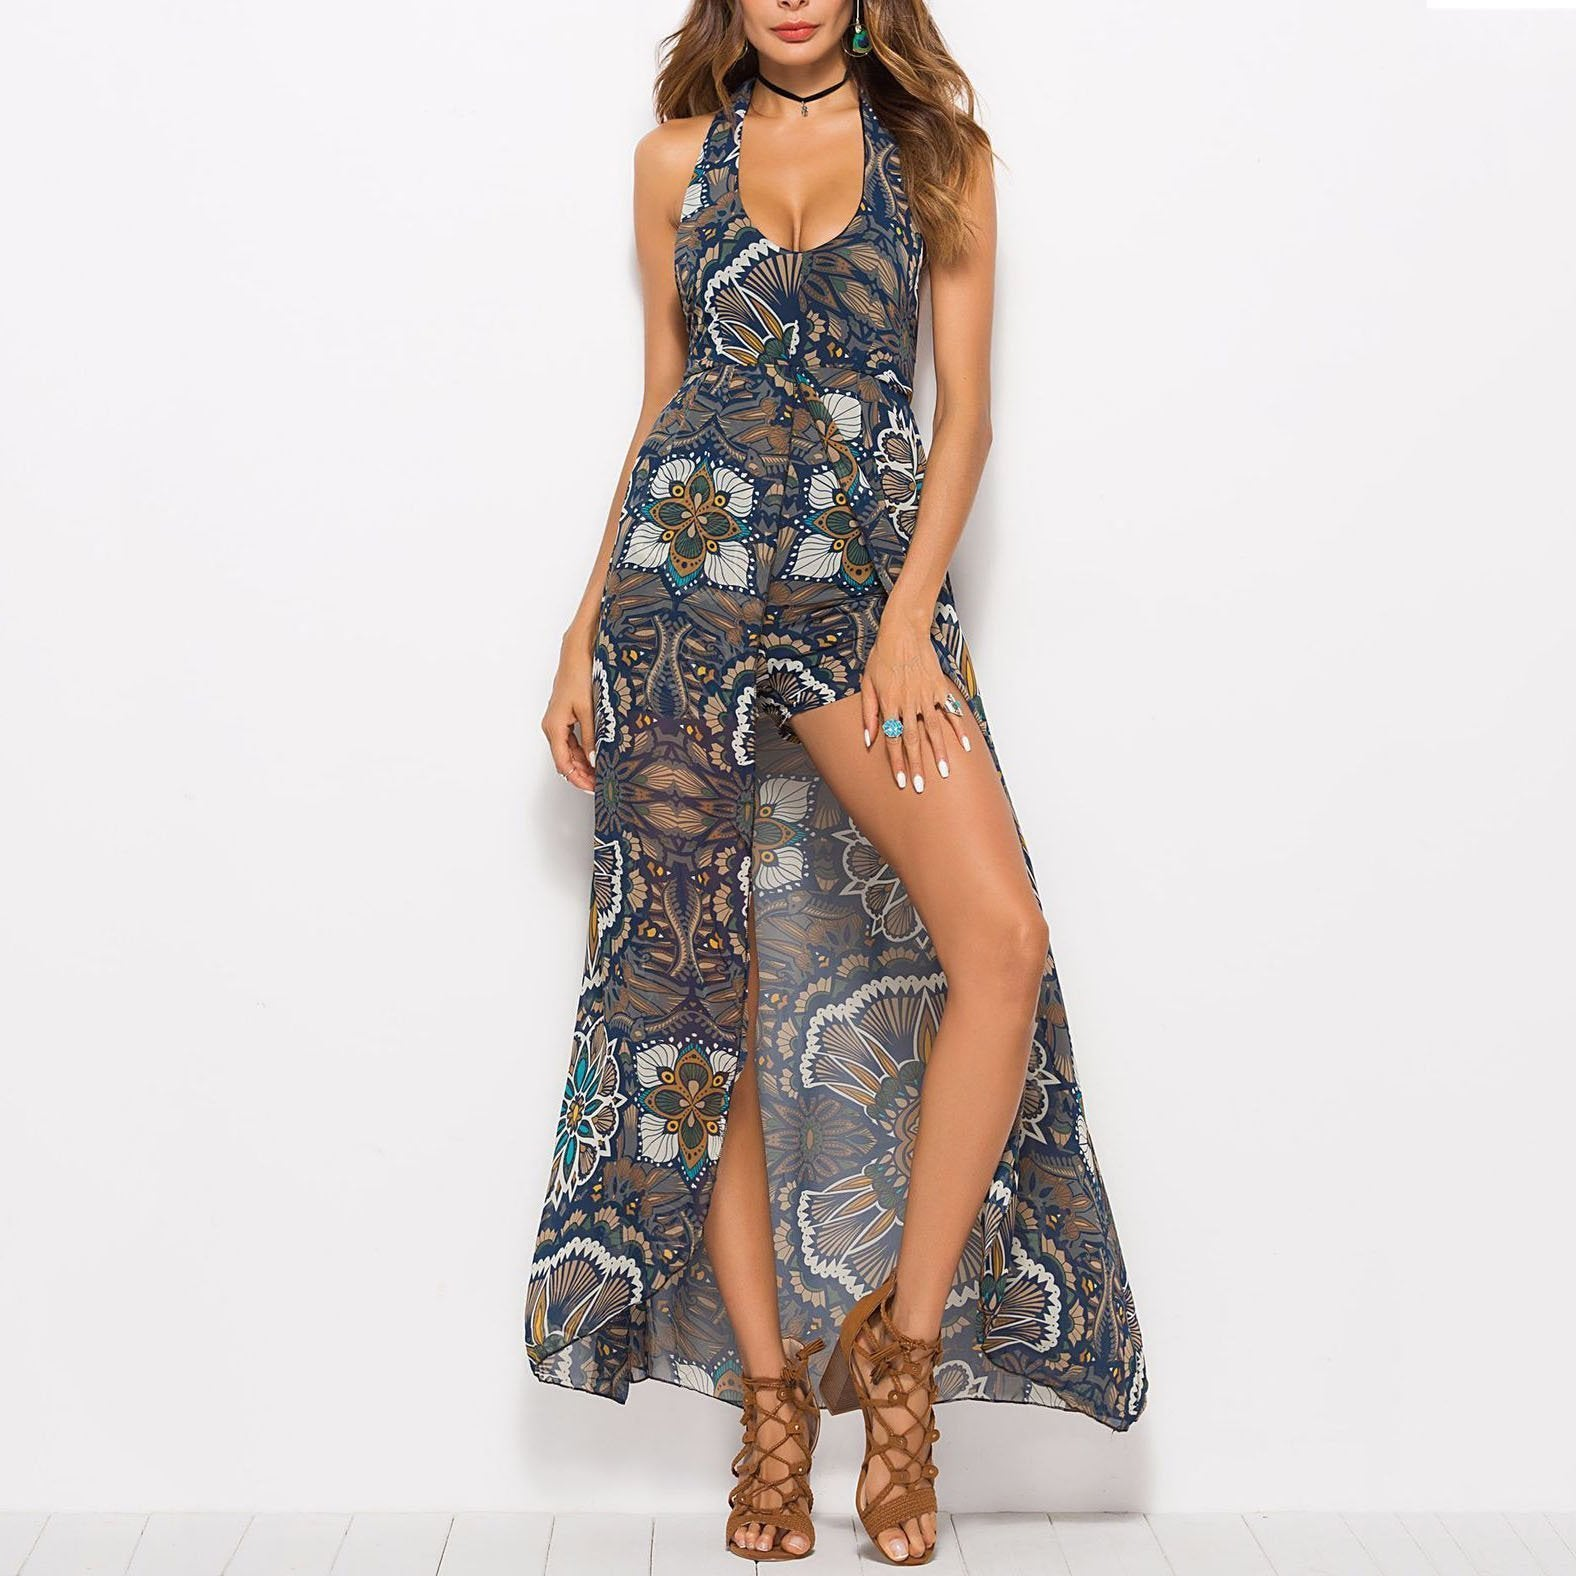 Bohemian Retro Printing Sleeveless Backless Beach Vacation Dress